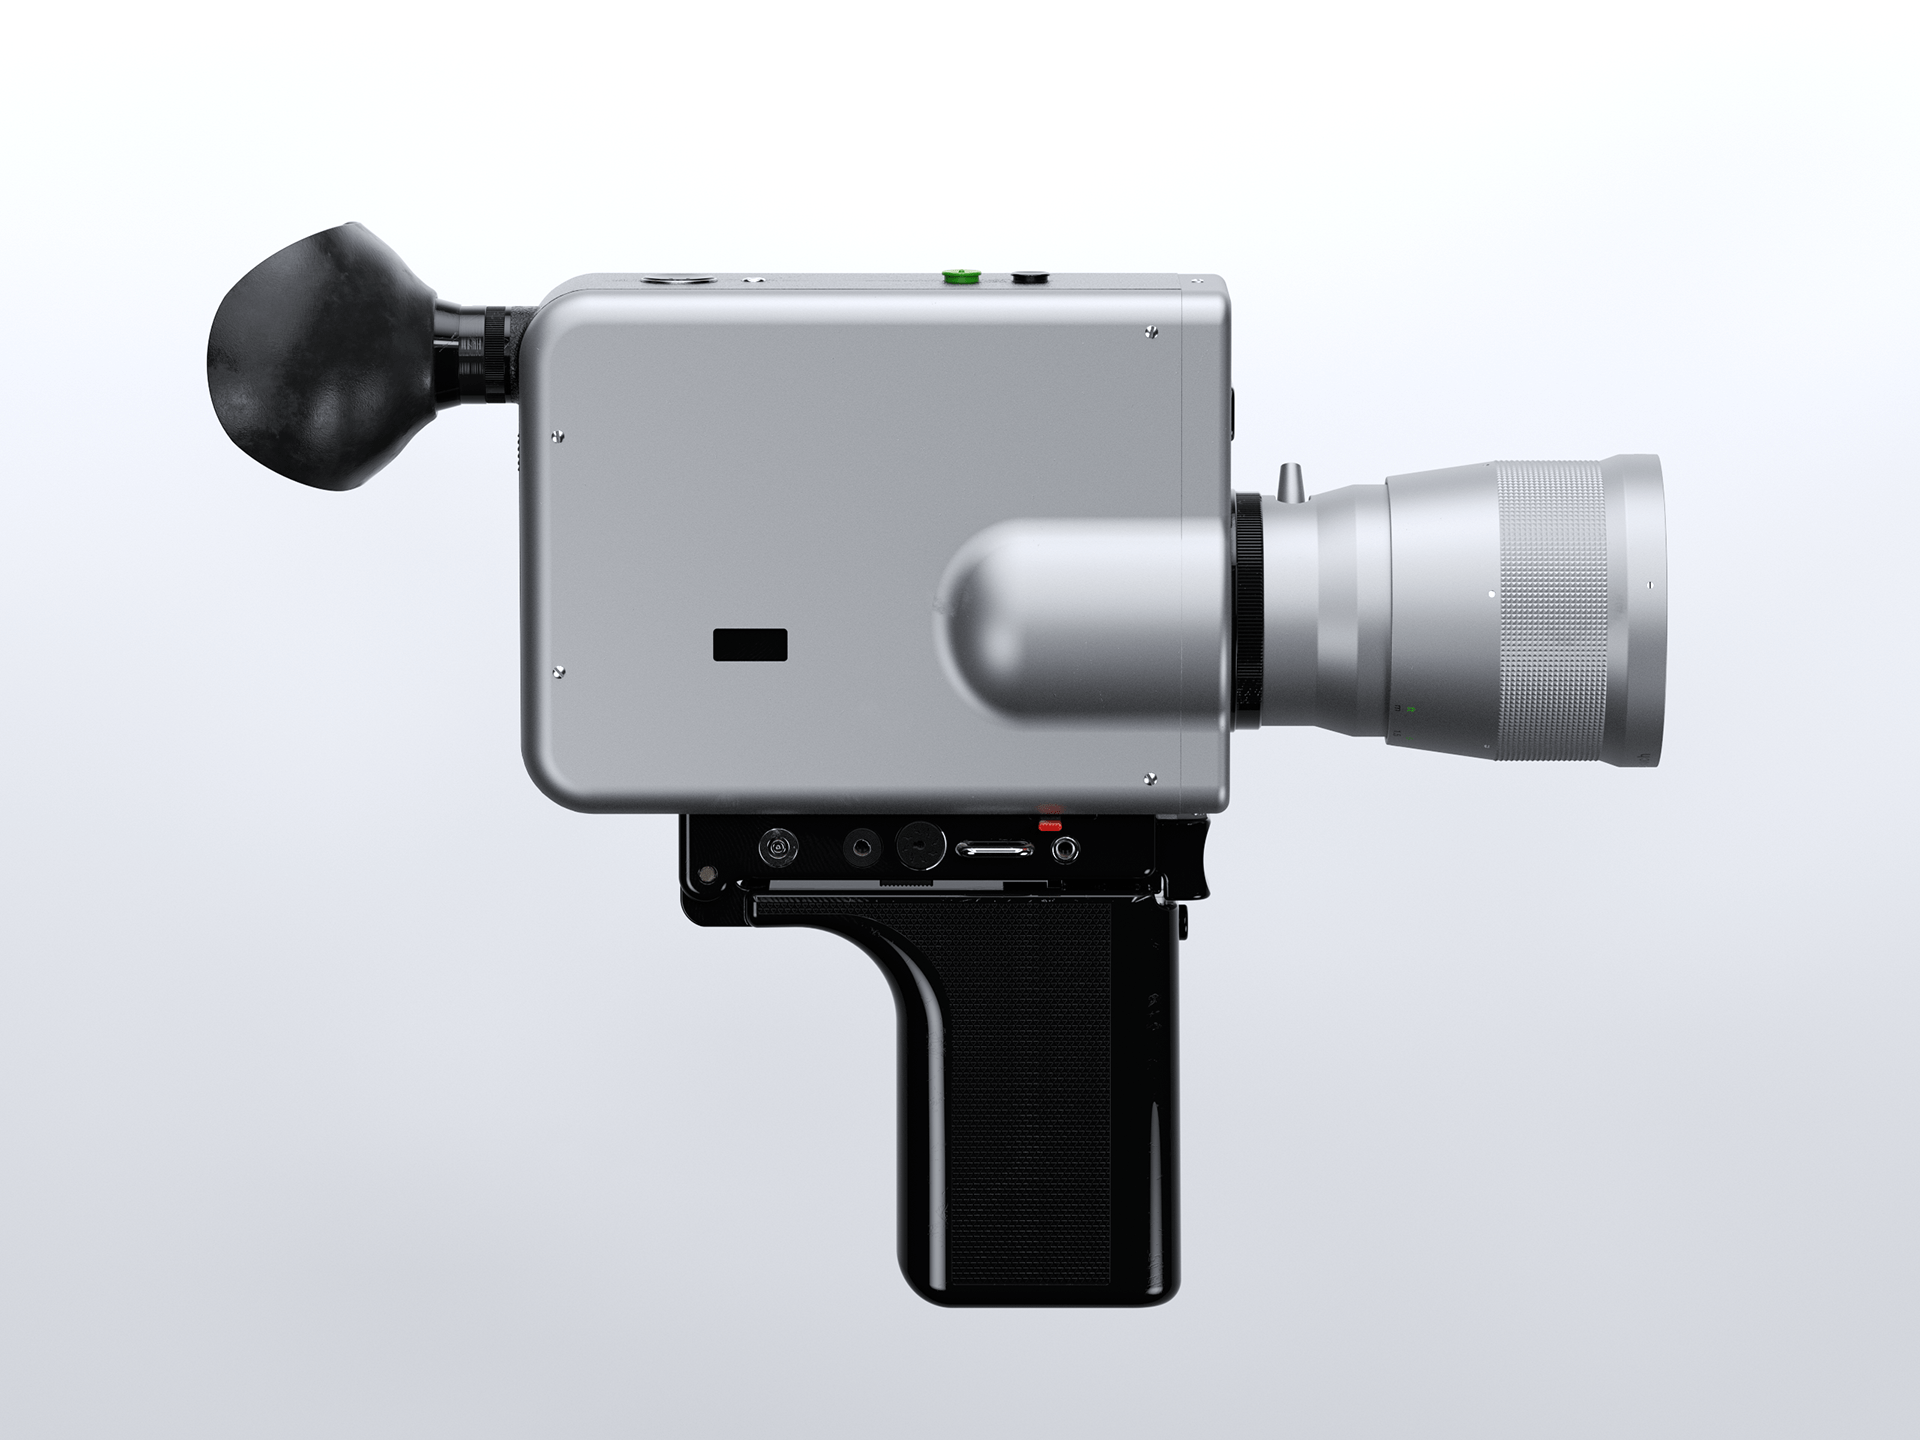 Nizo S 800 Braun Super 8 built-in 3D - Digital Art